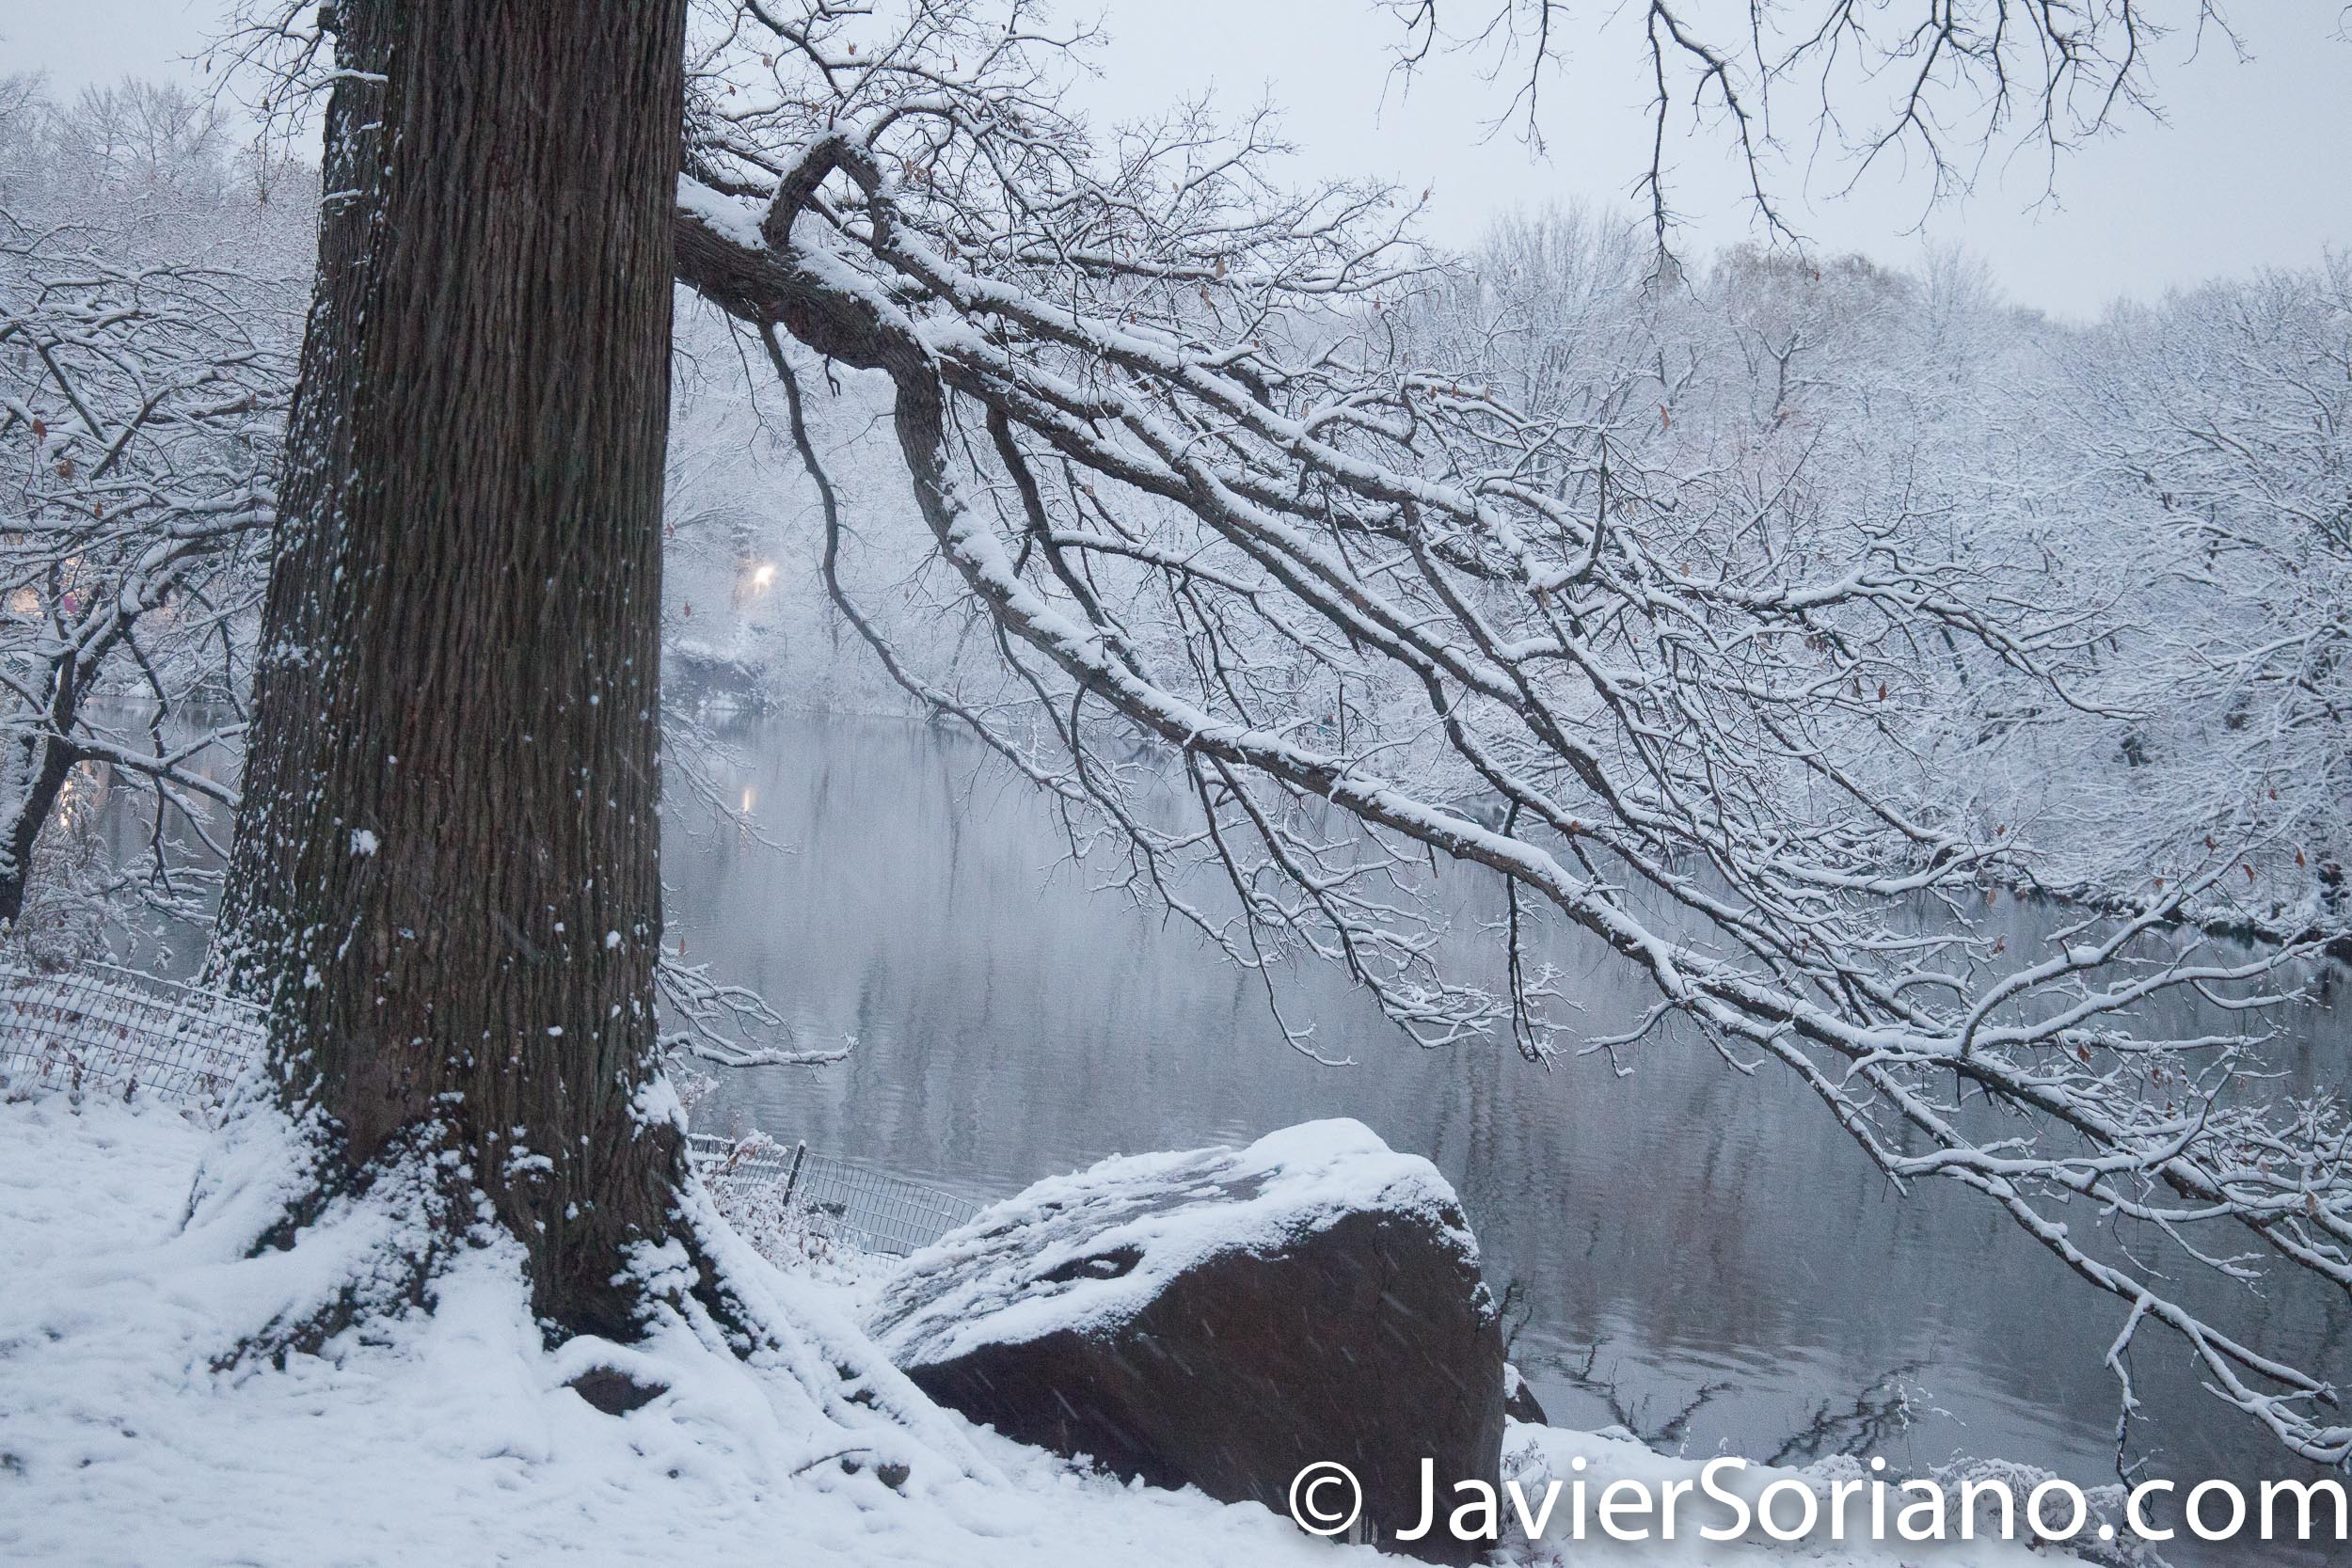 12/09/2017. NYC -Snowfall in Central Park. Nevada en el Parque Central de la Ciudad de Nueva York. Photo by Javier Soriano/www.JavierSoriano.com